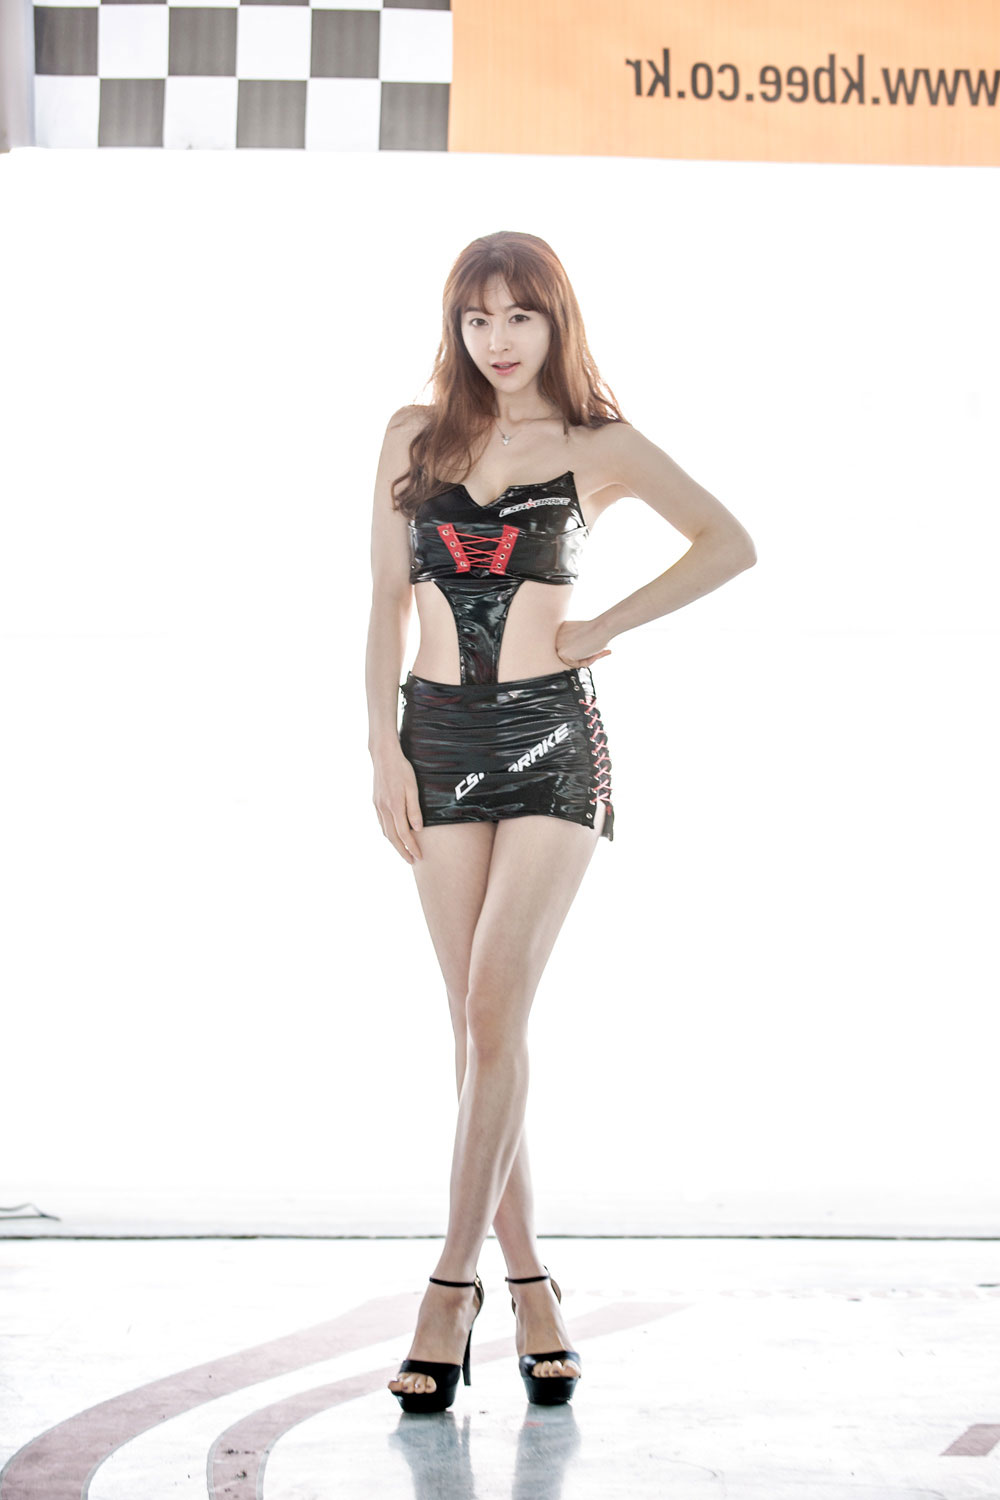 Lee Ga Na CJ Super Race 2015 KBEE